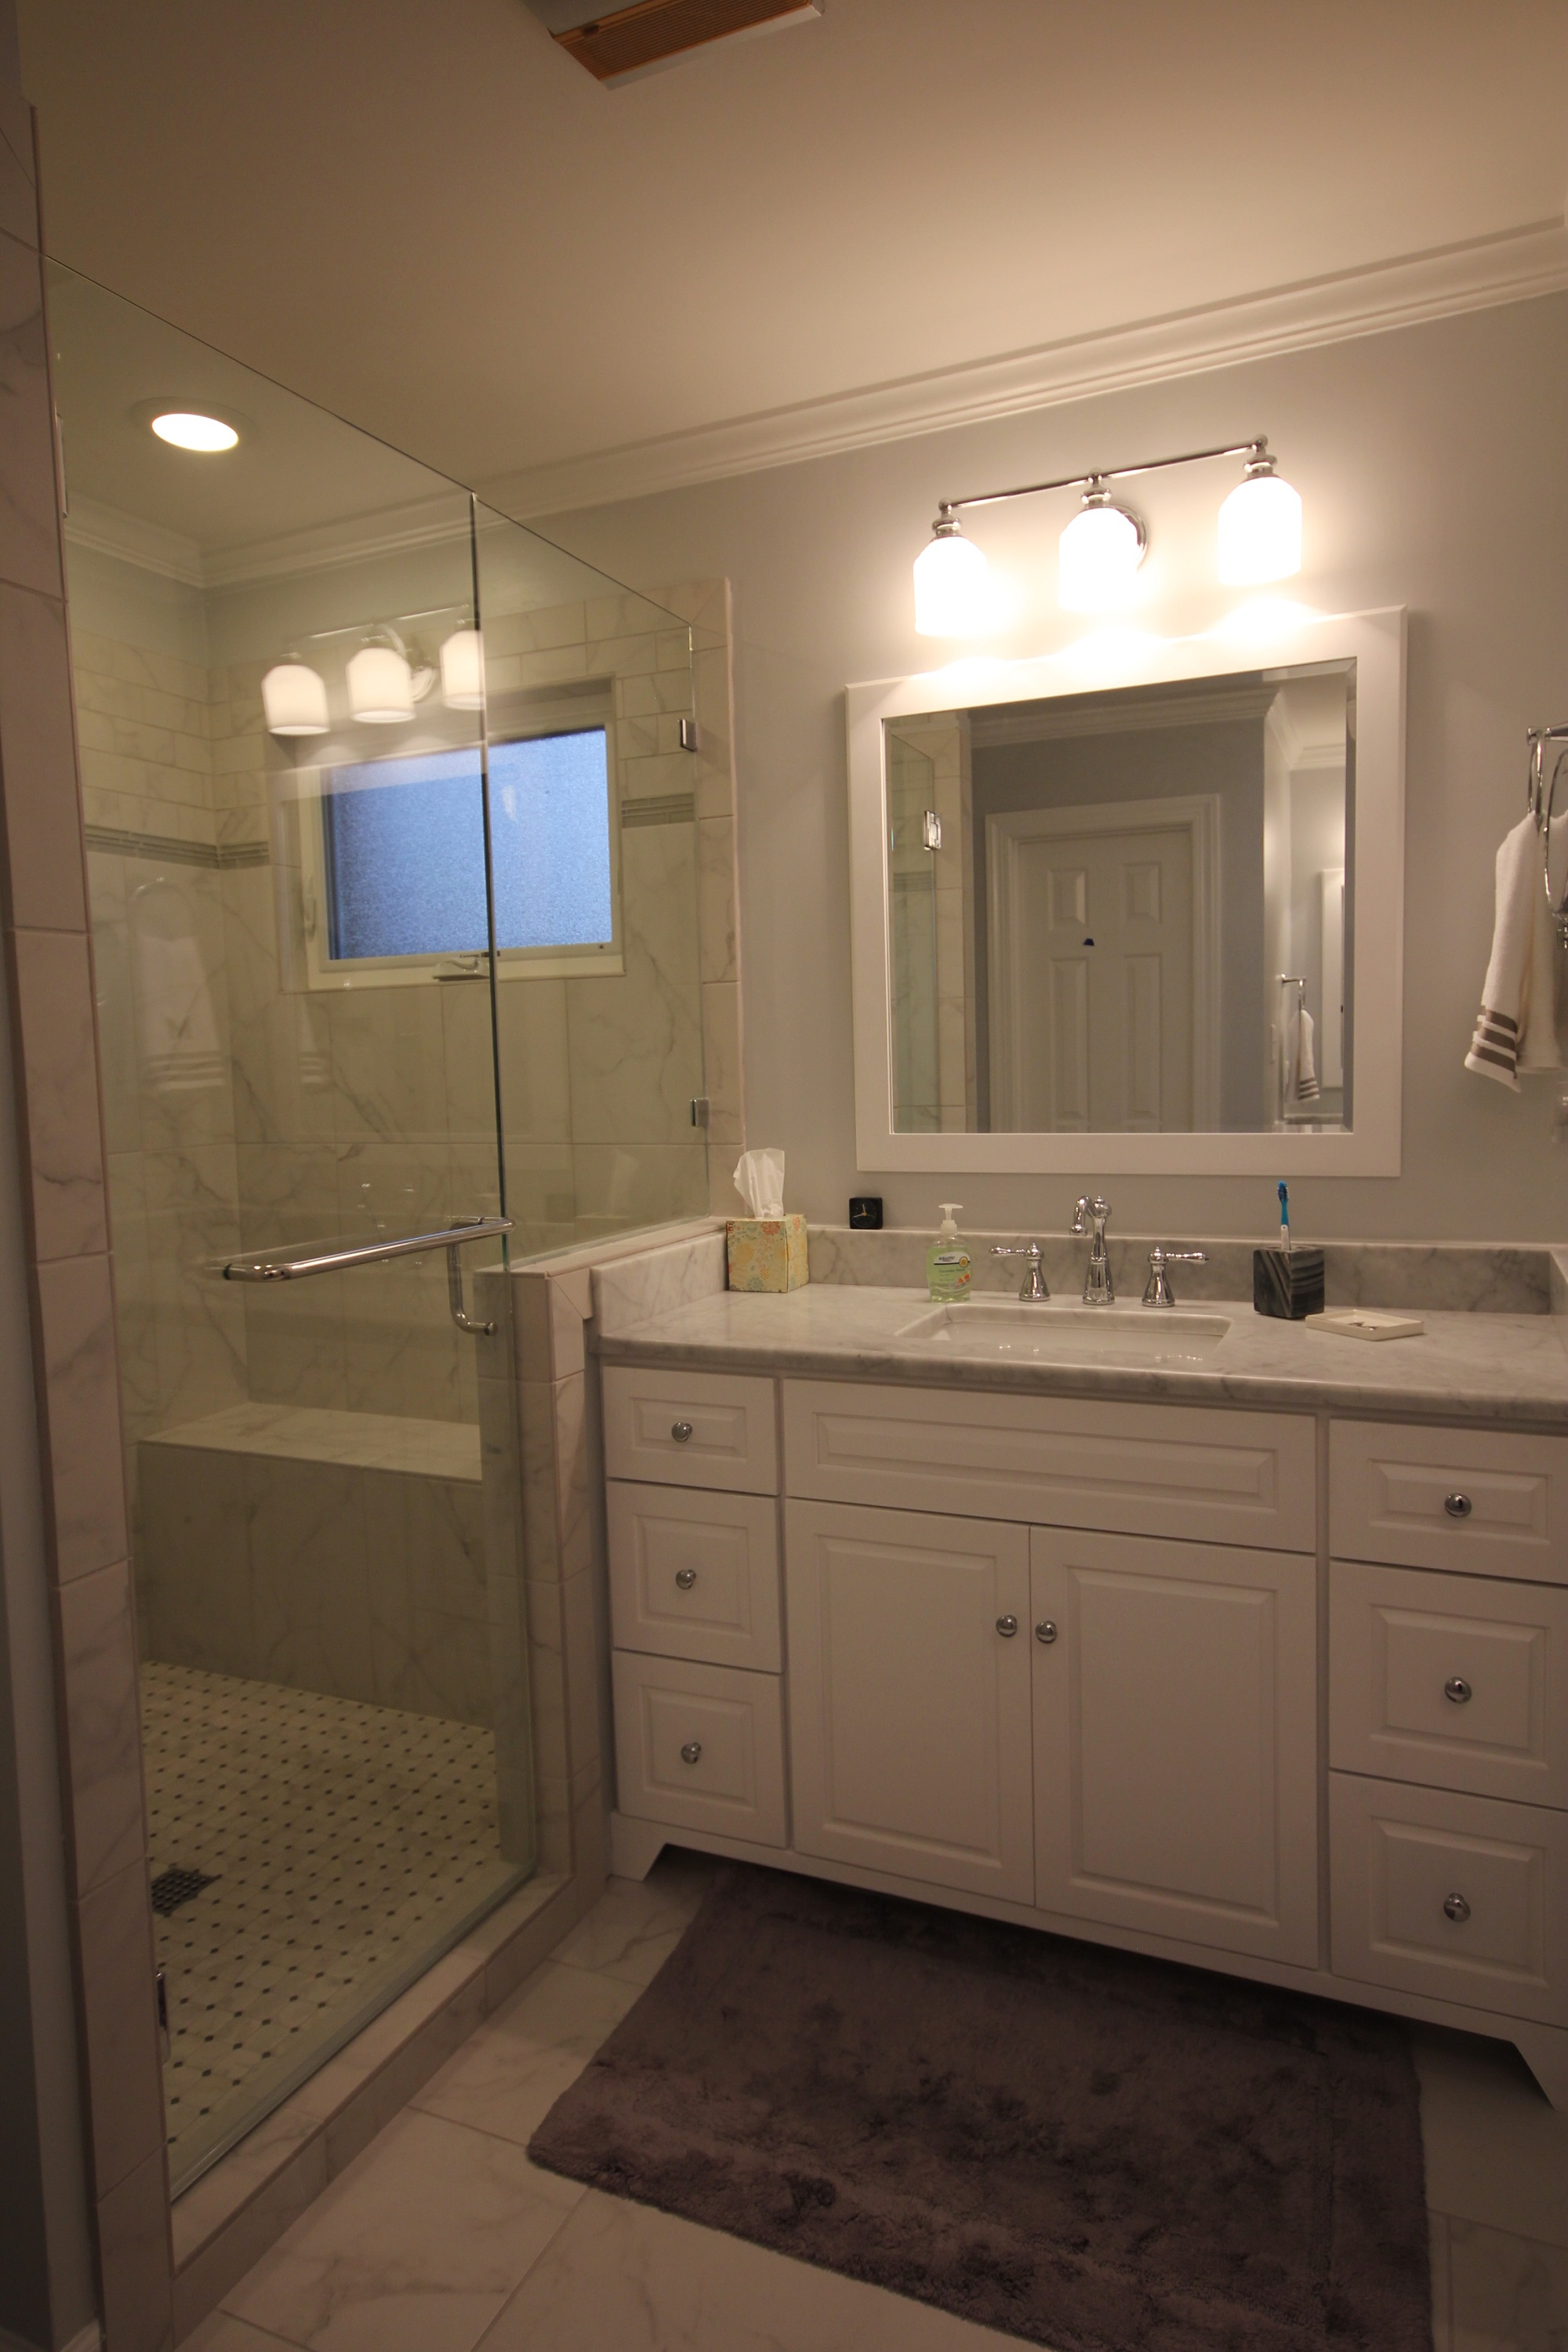 Before & After Bathroom Remodeling Images